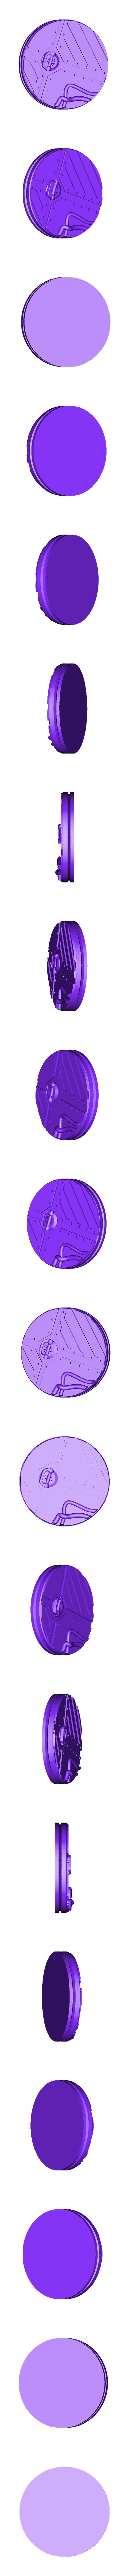 """Ship_H_-_1_inch.stl Download free STL file 1"""" & 2' Round Bases - The Ignis Quadrant • 3D printing template, ec3d"""